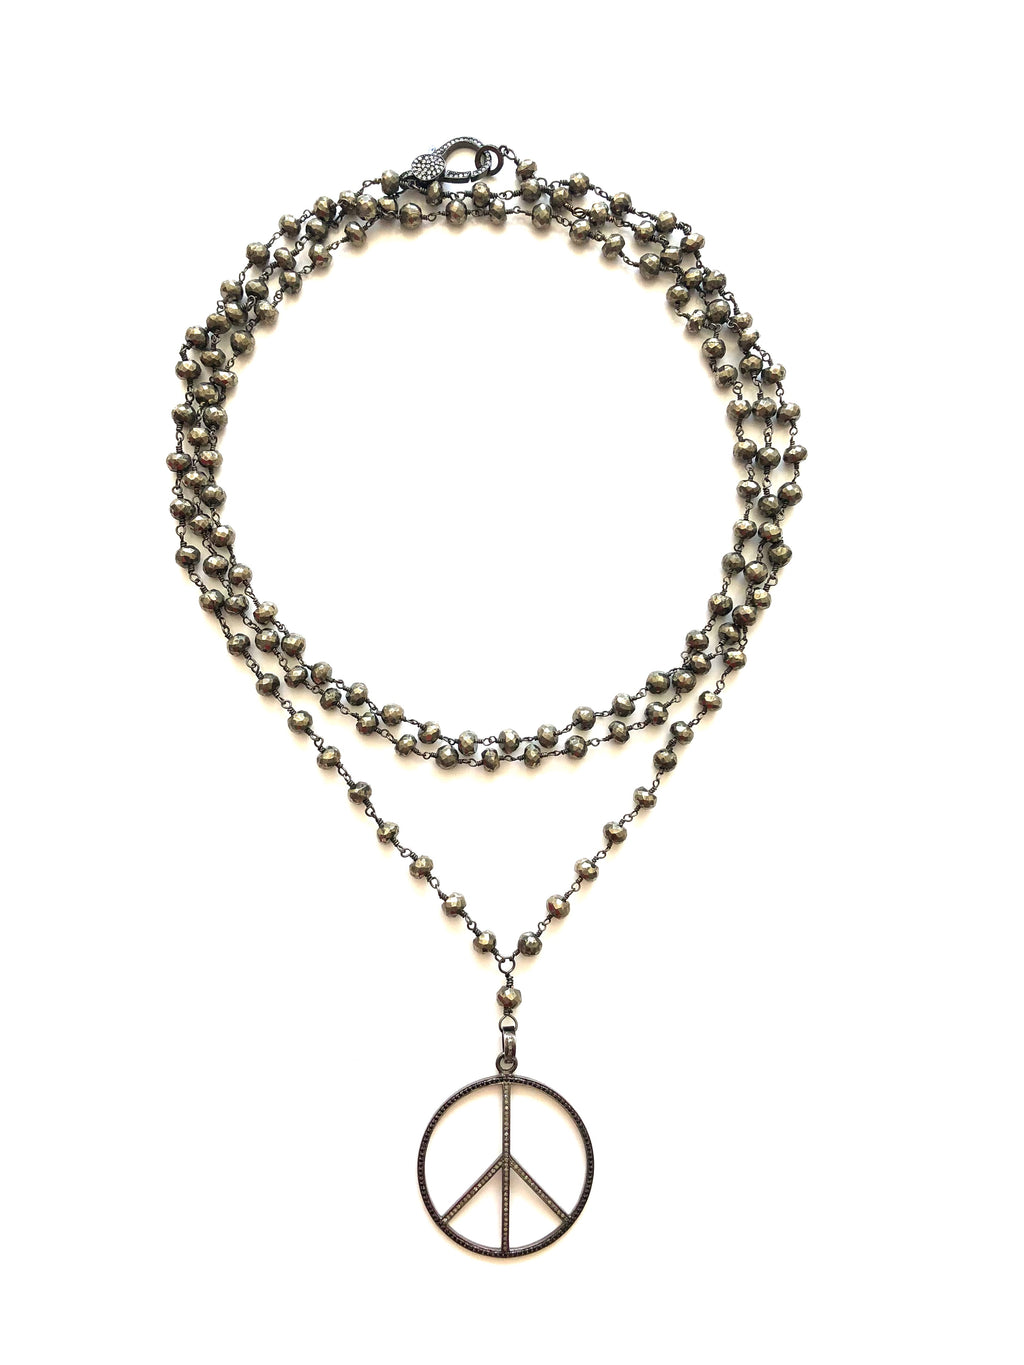 PEACE and Pyrite Necklace